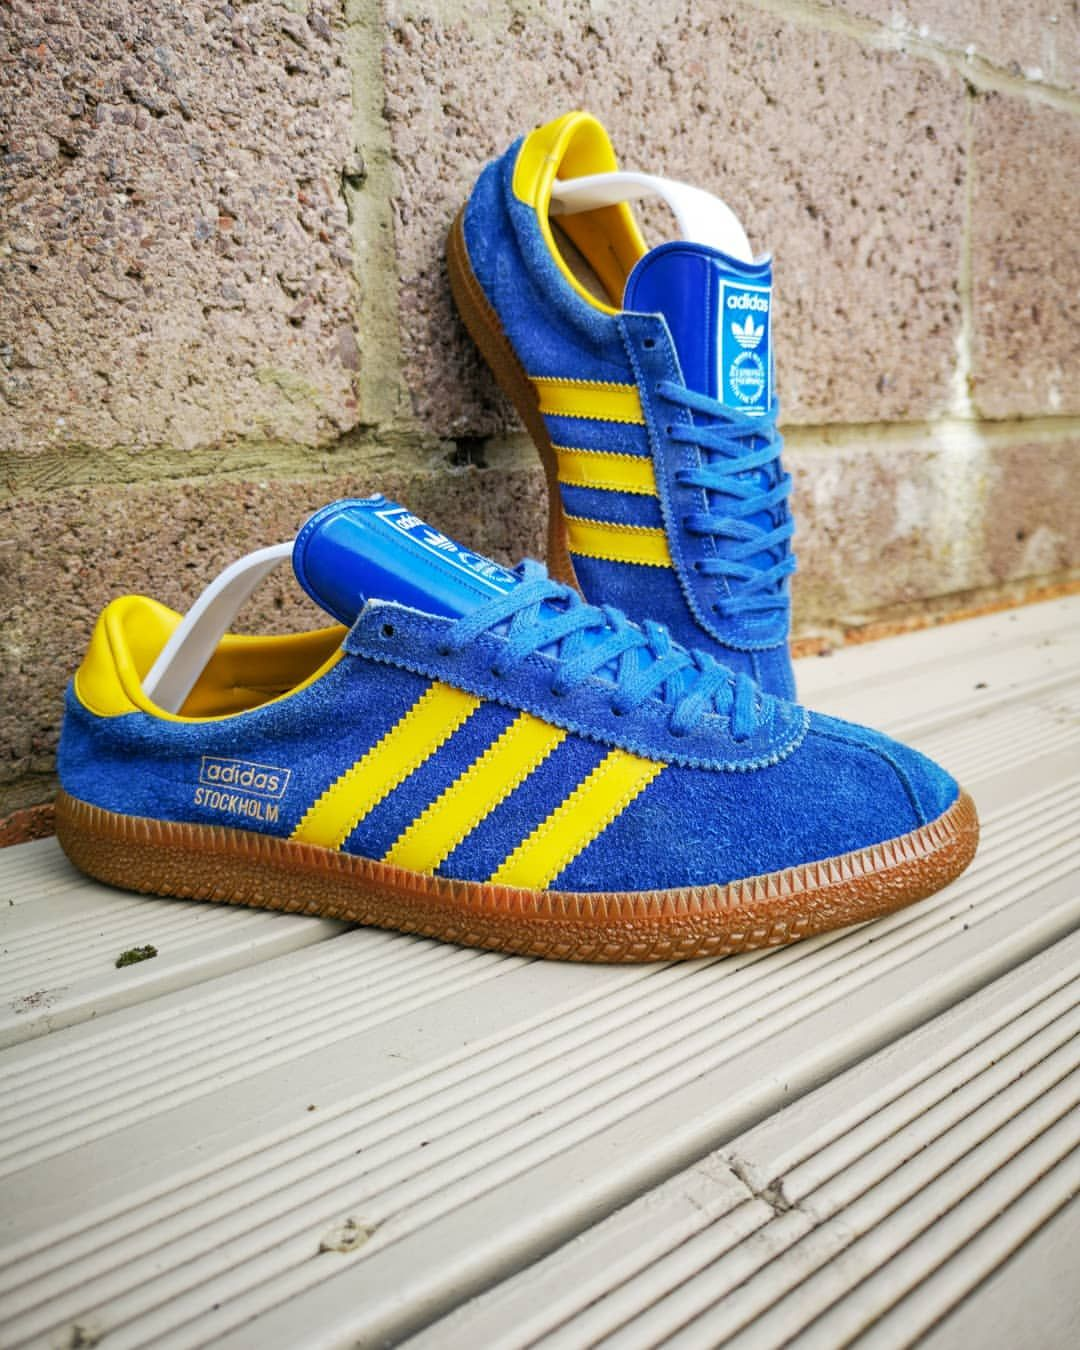 super specials on feet images of coupon codes adidas Originals Stockholm | Sneakers: adidas City Series in ...